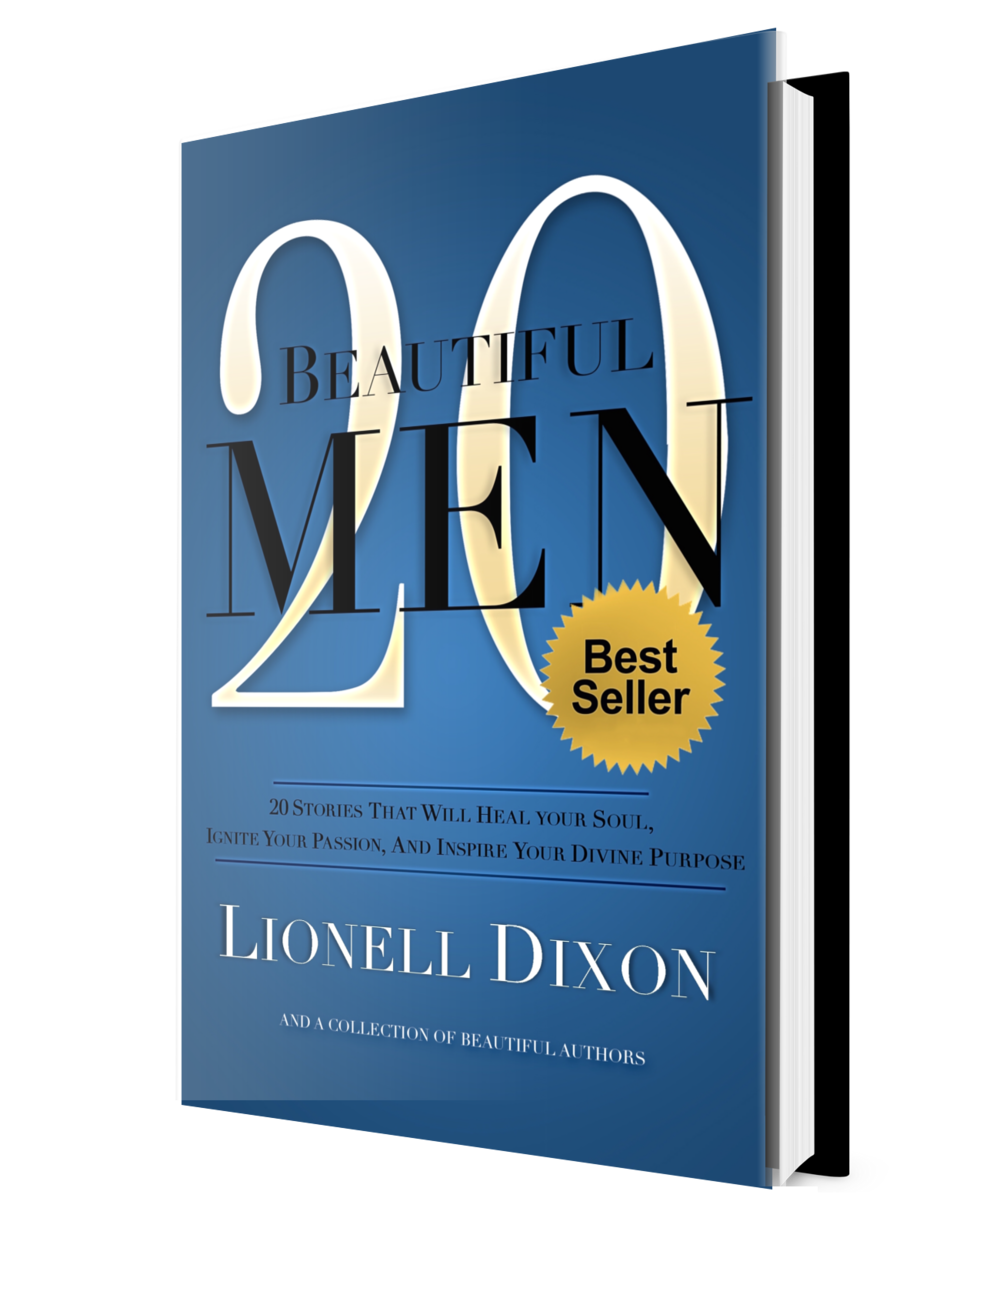 20 Beautiful Men by Lionell Dixon